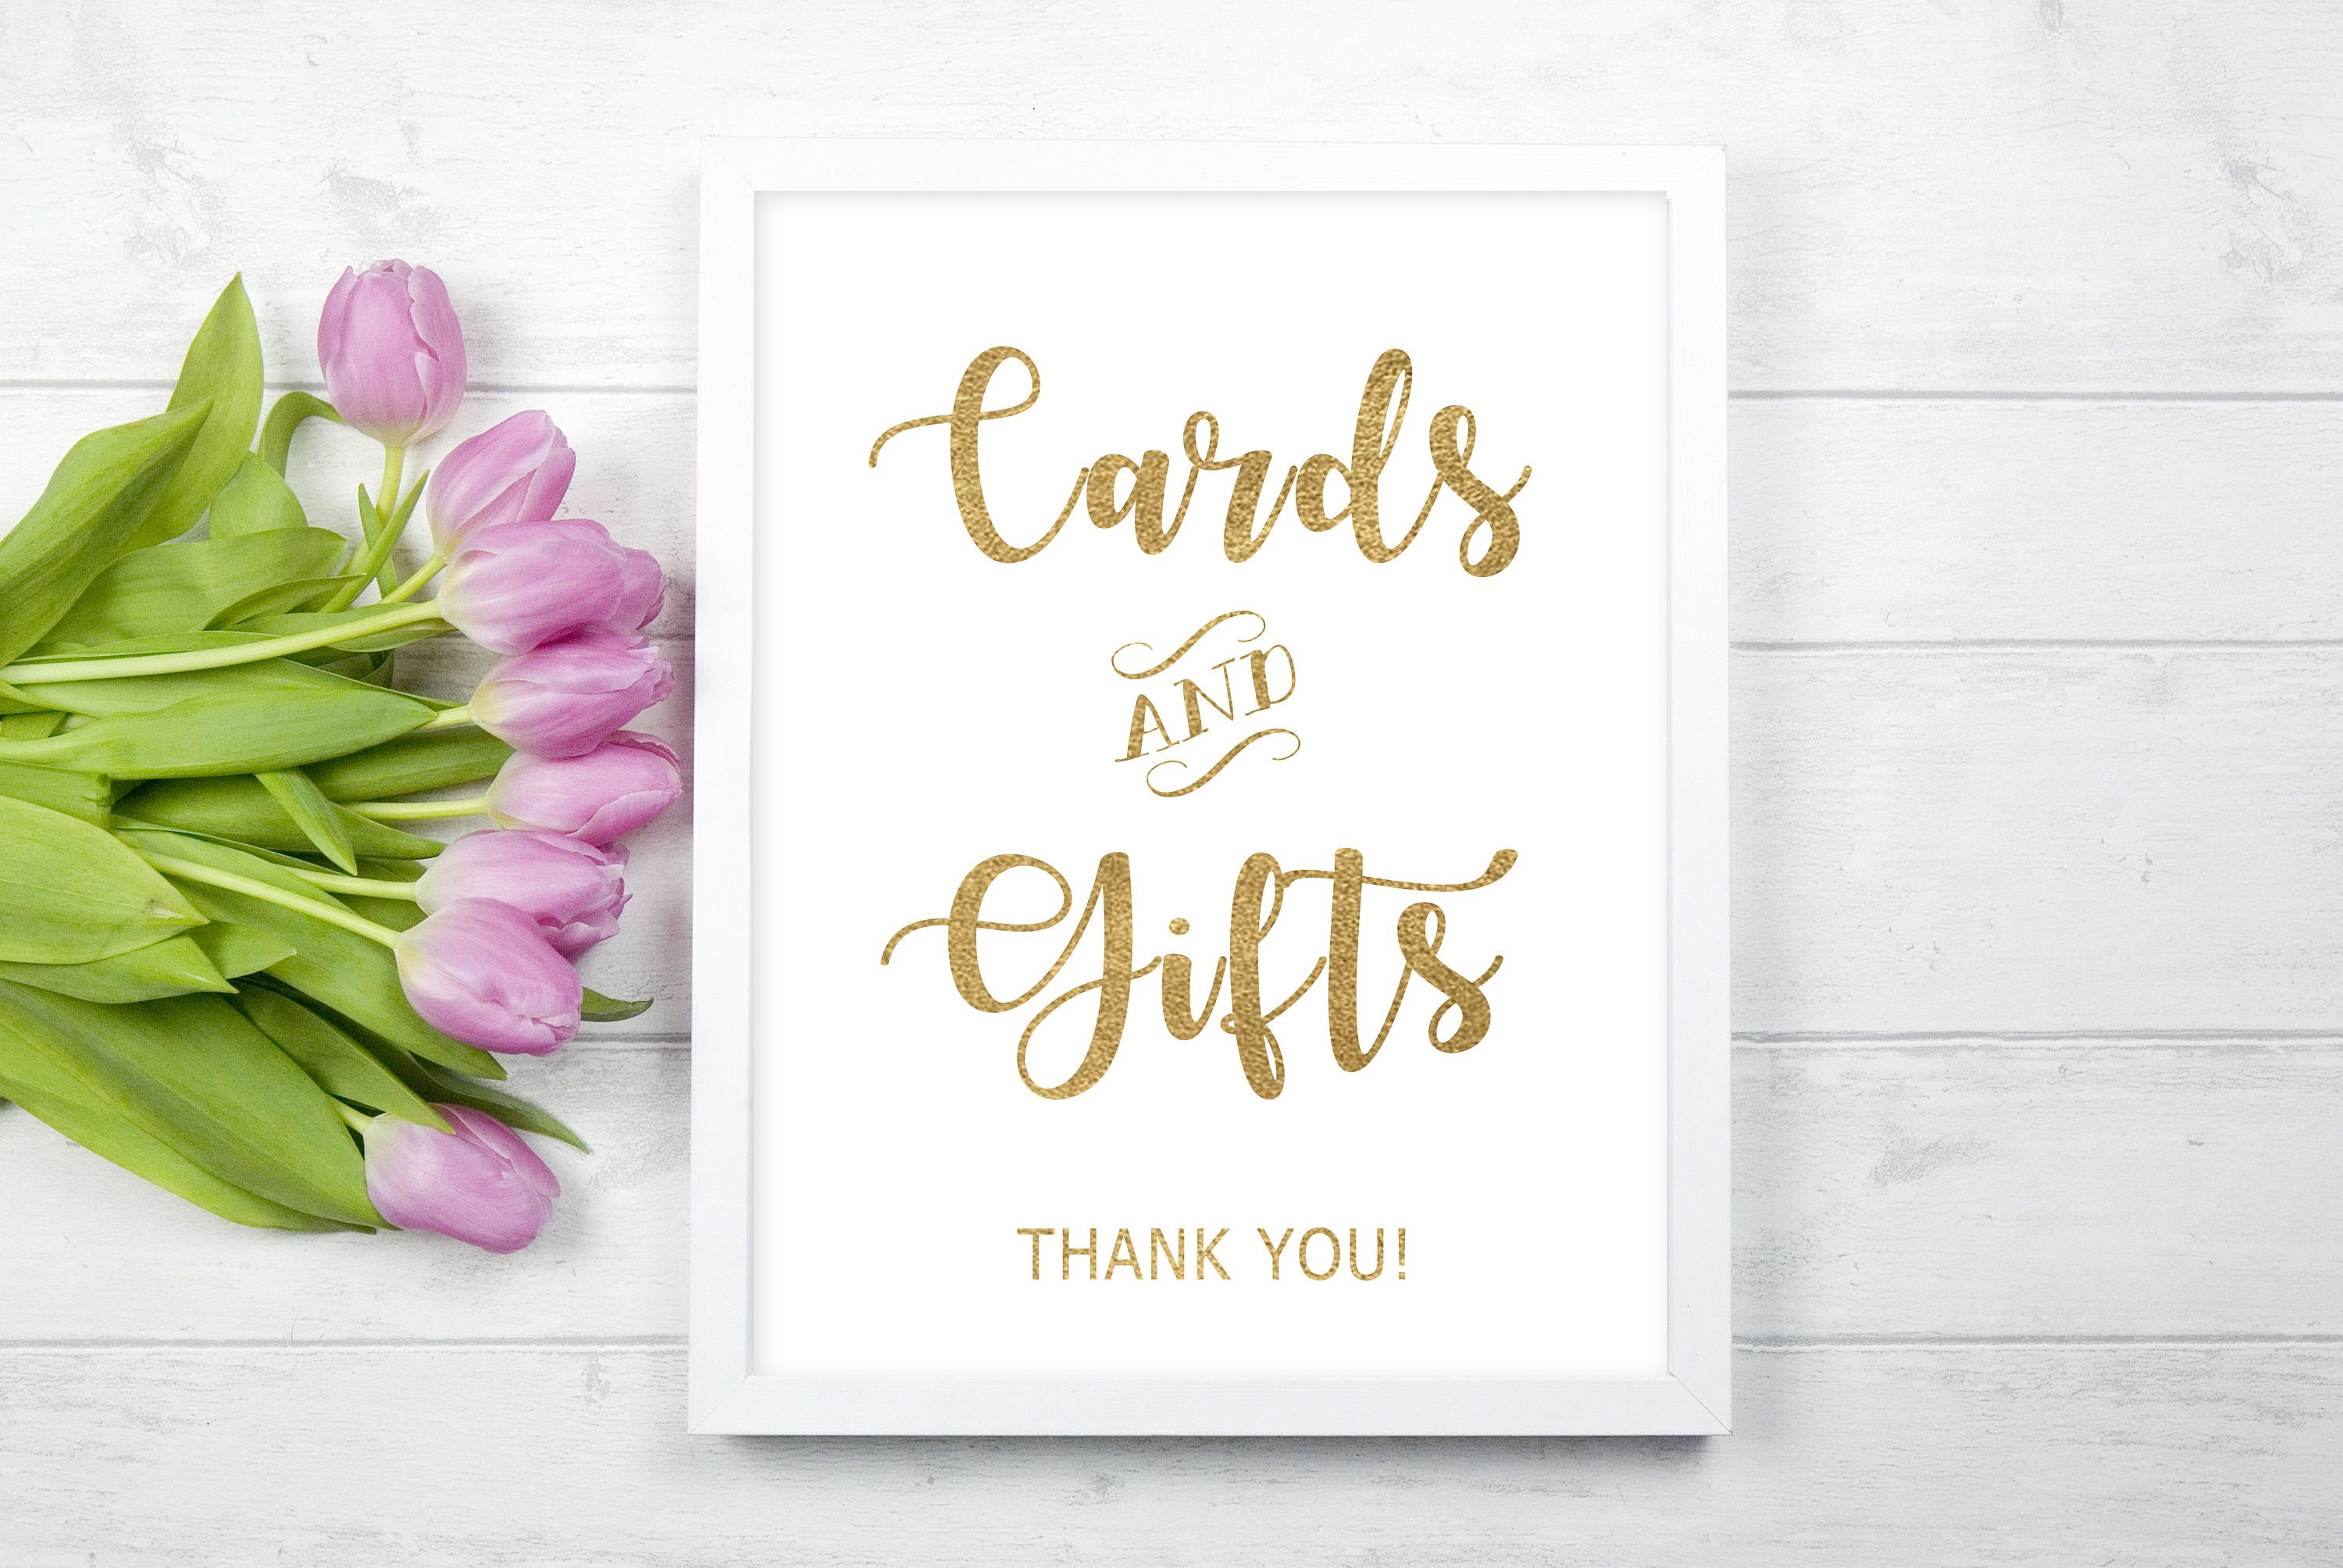 Reception signage Wedding sign in gold foil Cards /& Gifts wedding print